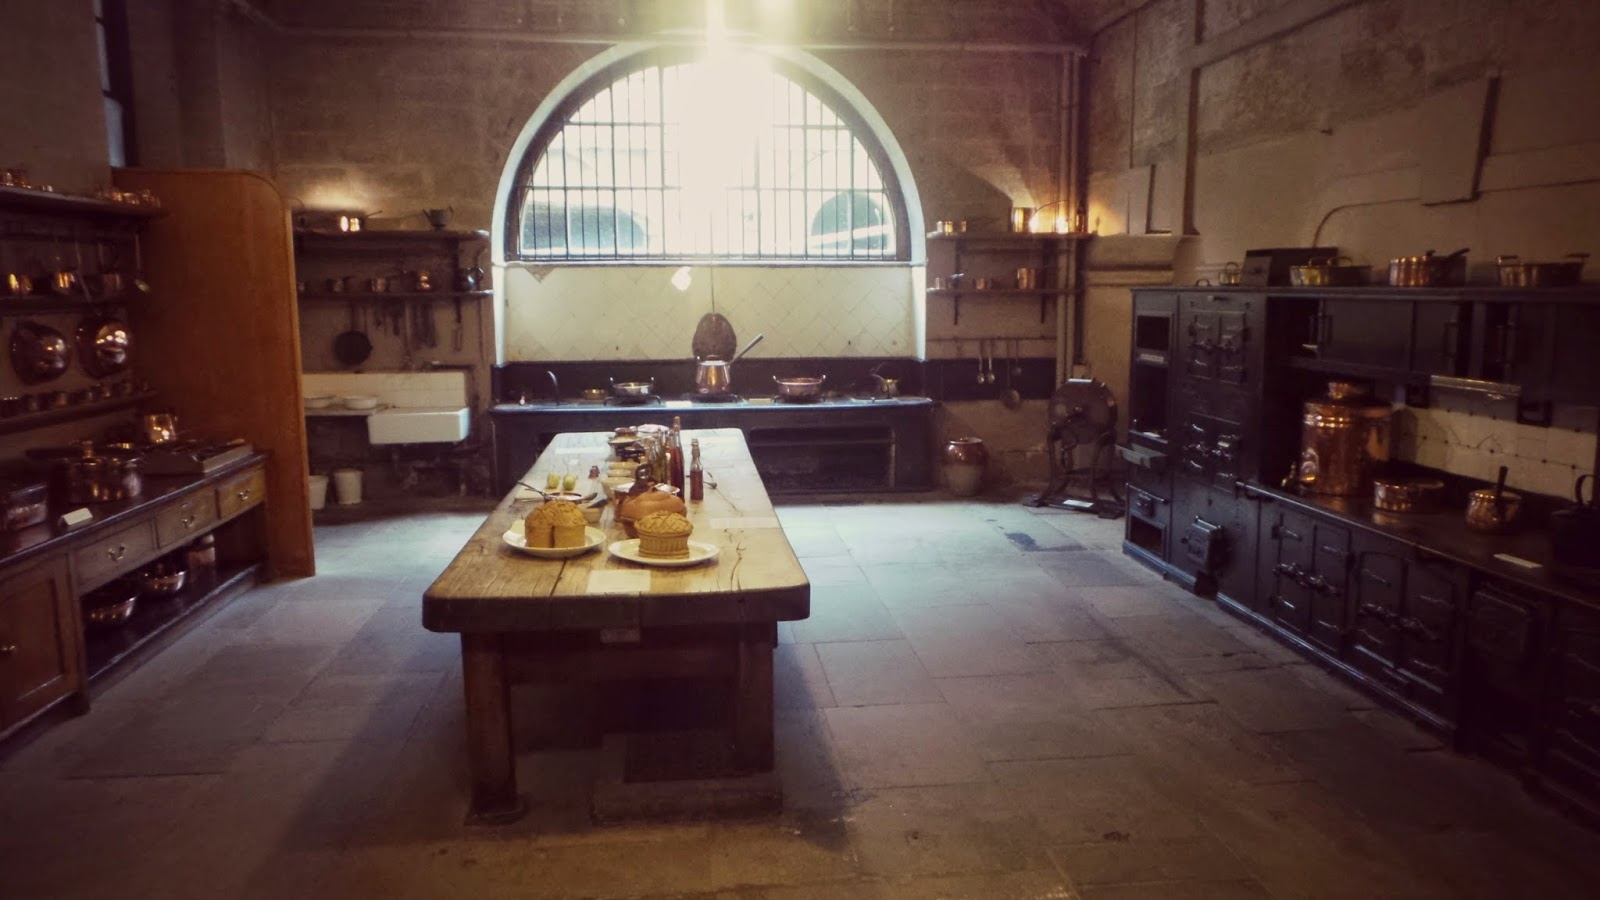 Harewood house kitchens